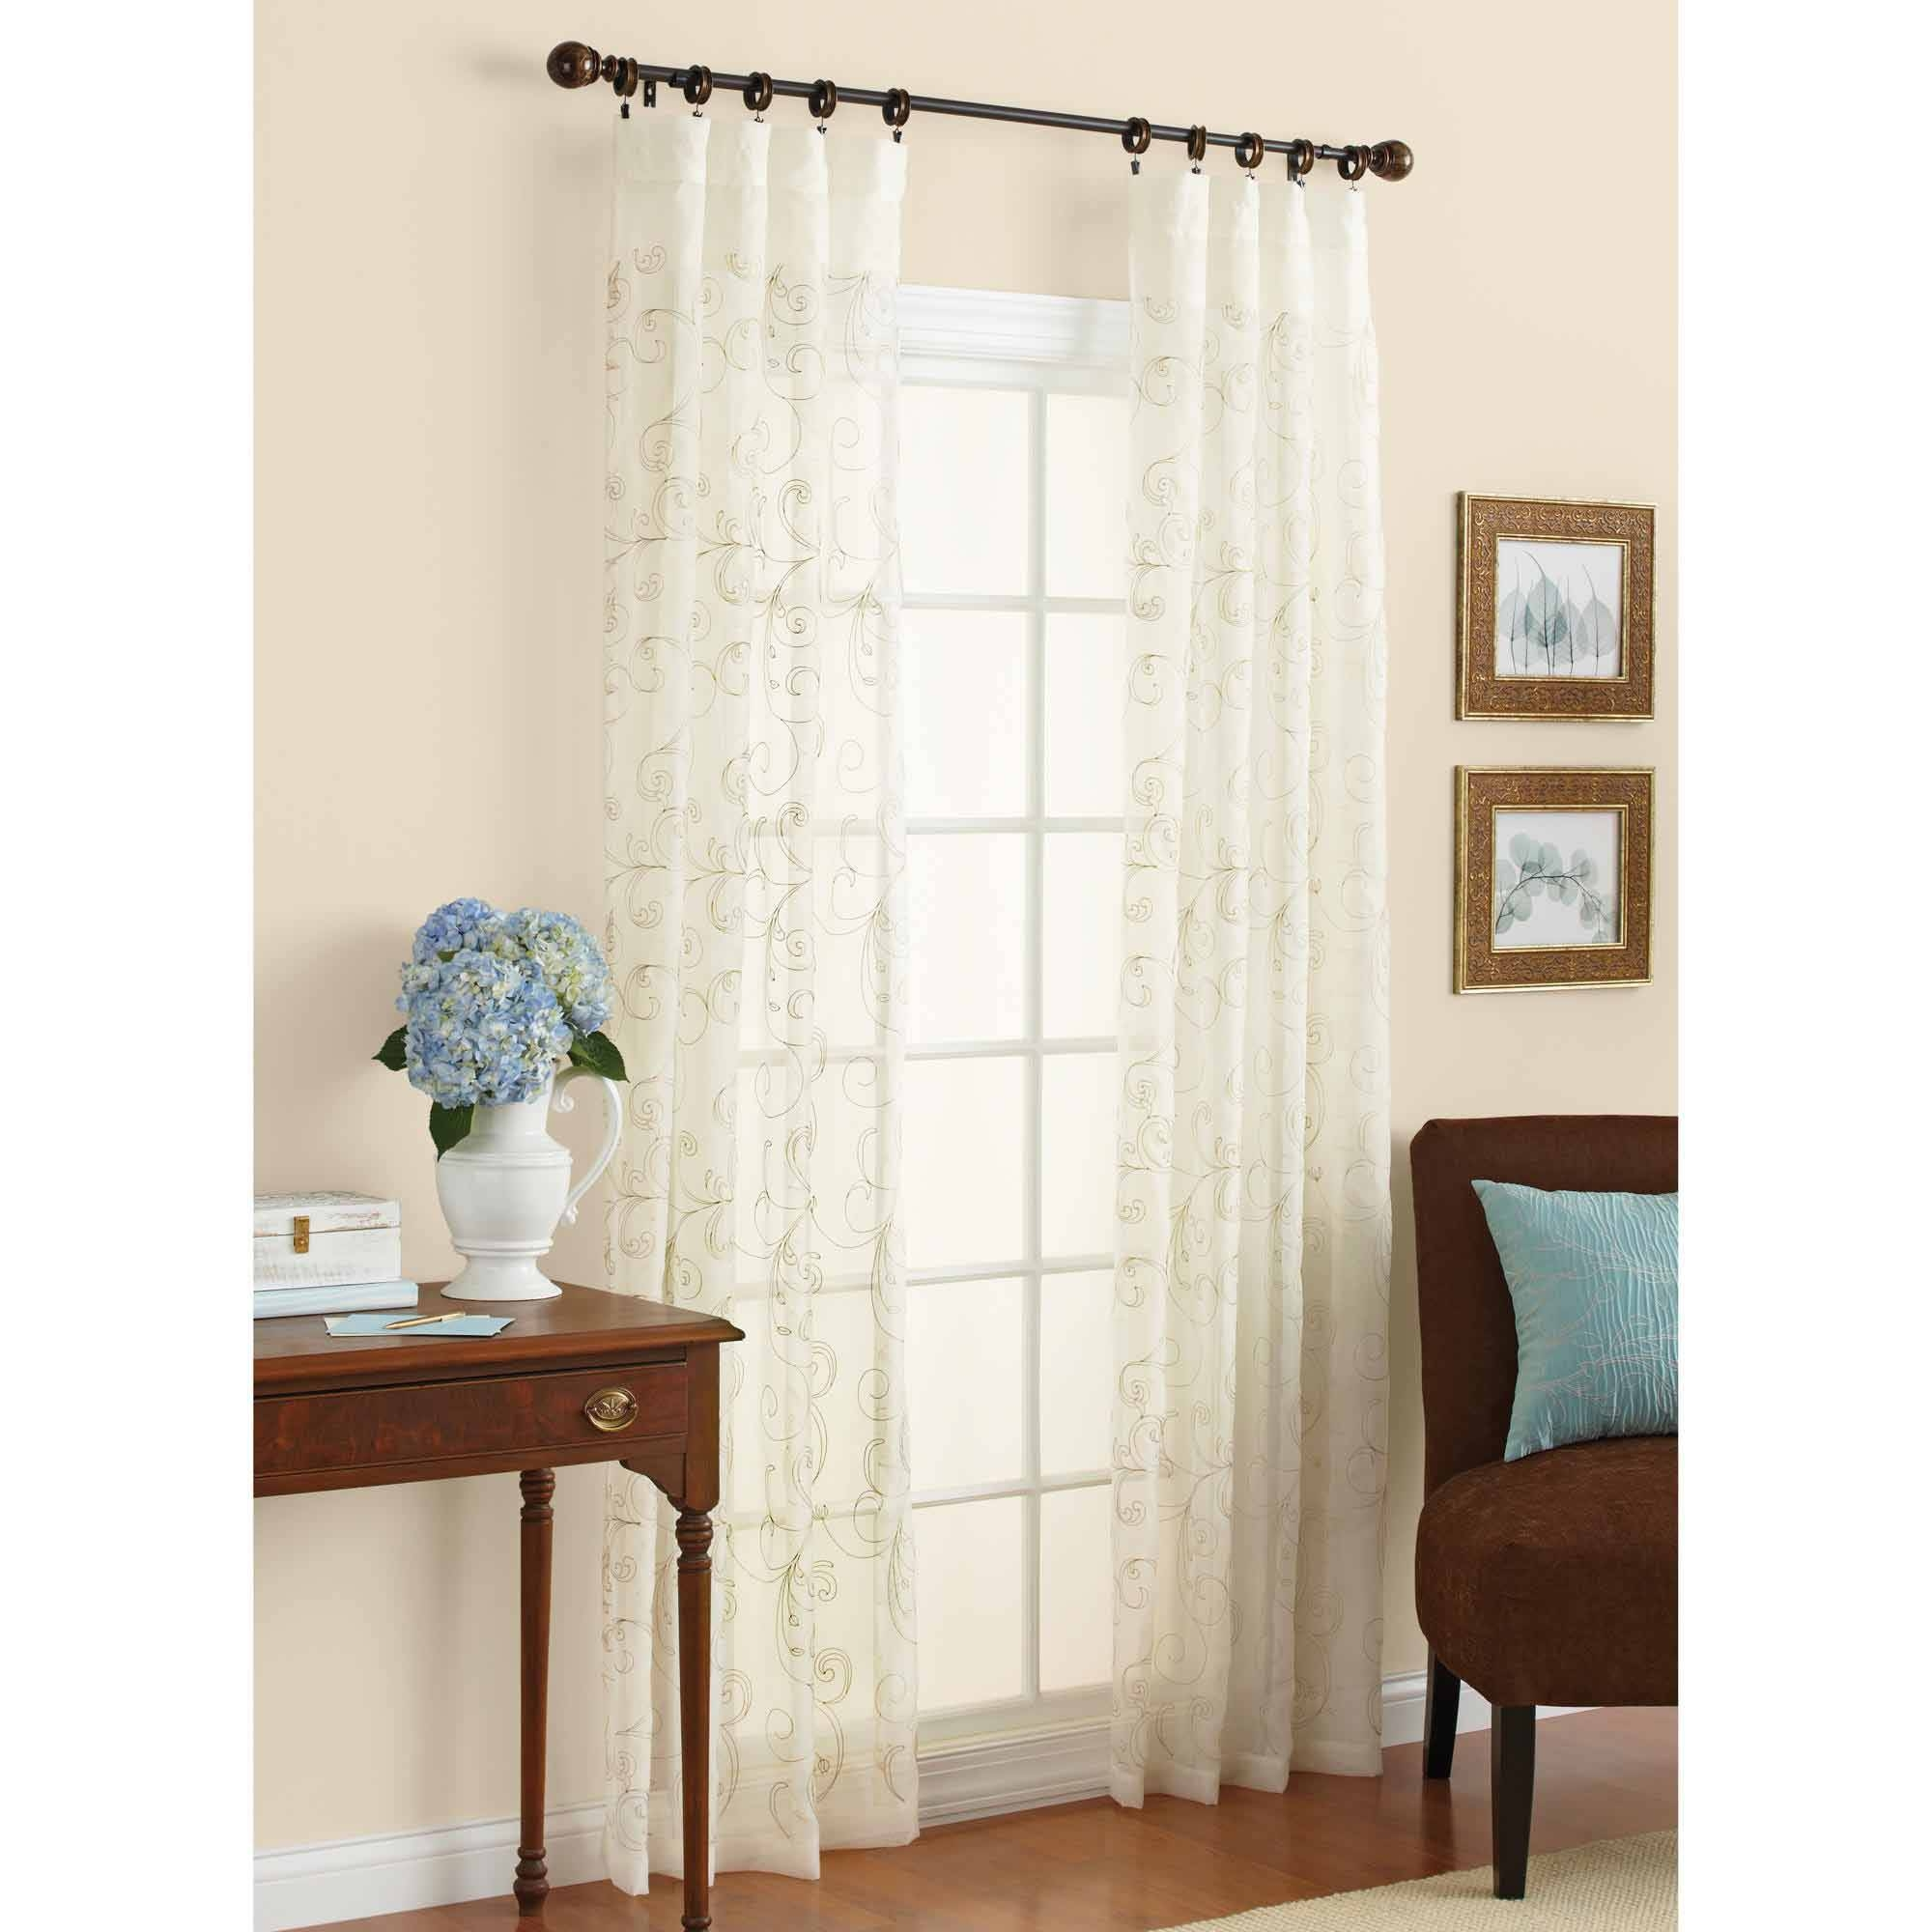 Better Homes And Gardens Embroidered Sheer Curtain Panel Walmart In Curtain Sheers (View 11 of 25)